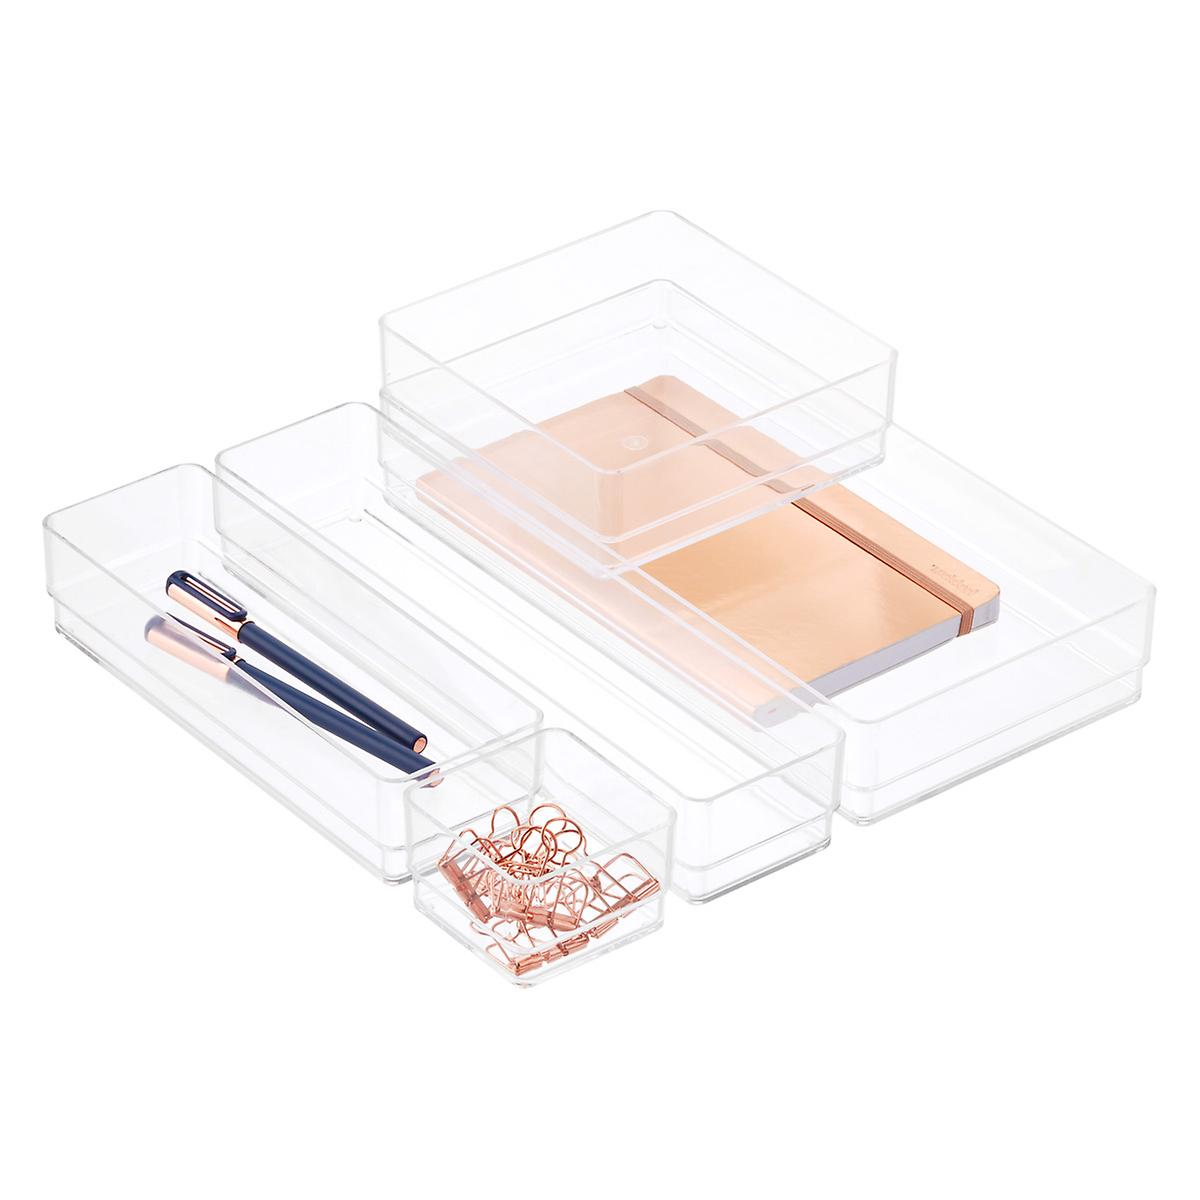 Acrylic Office Drawer Organizers